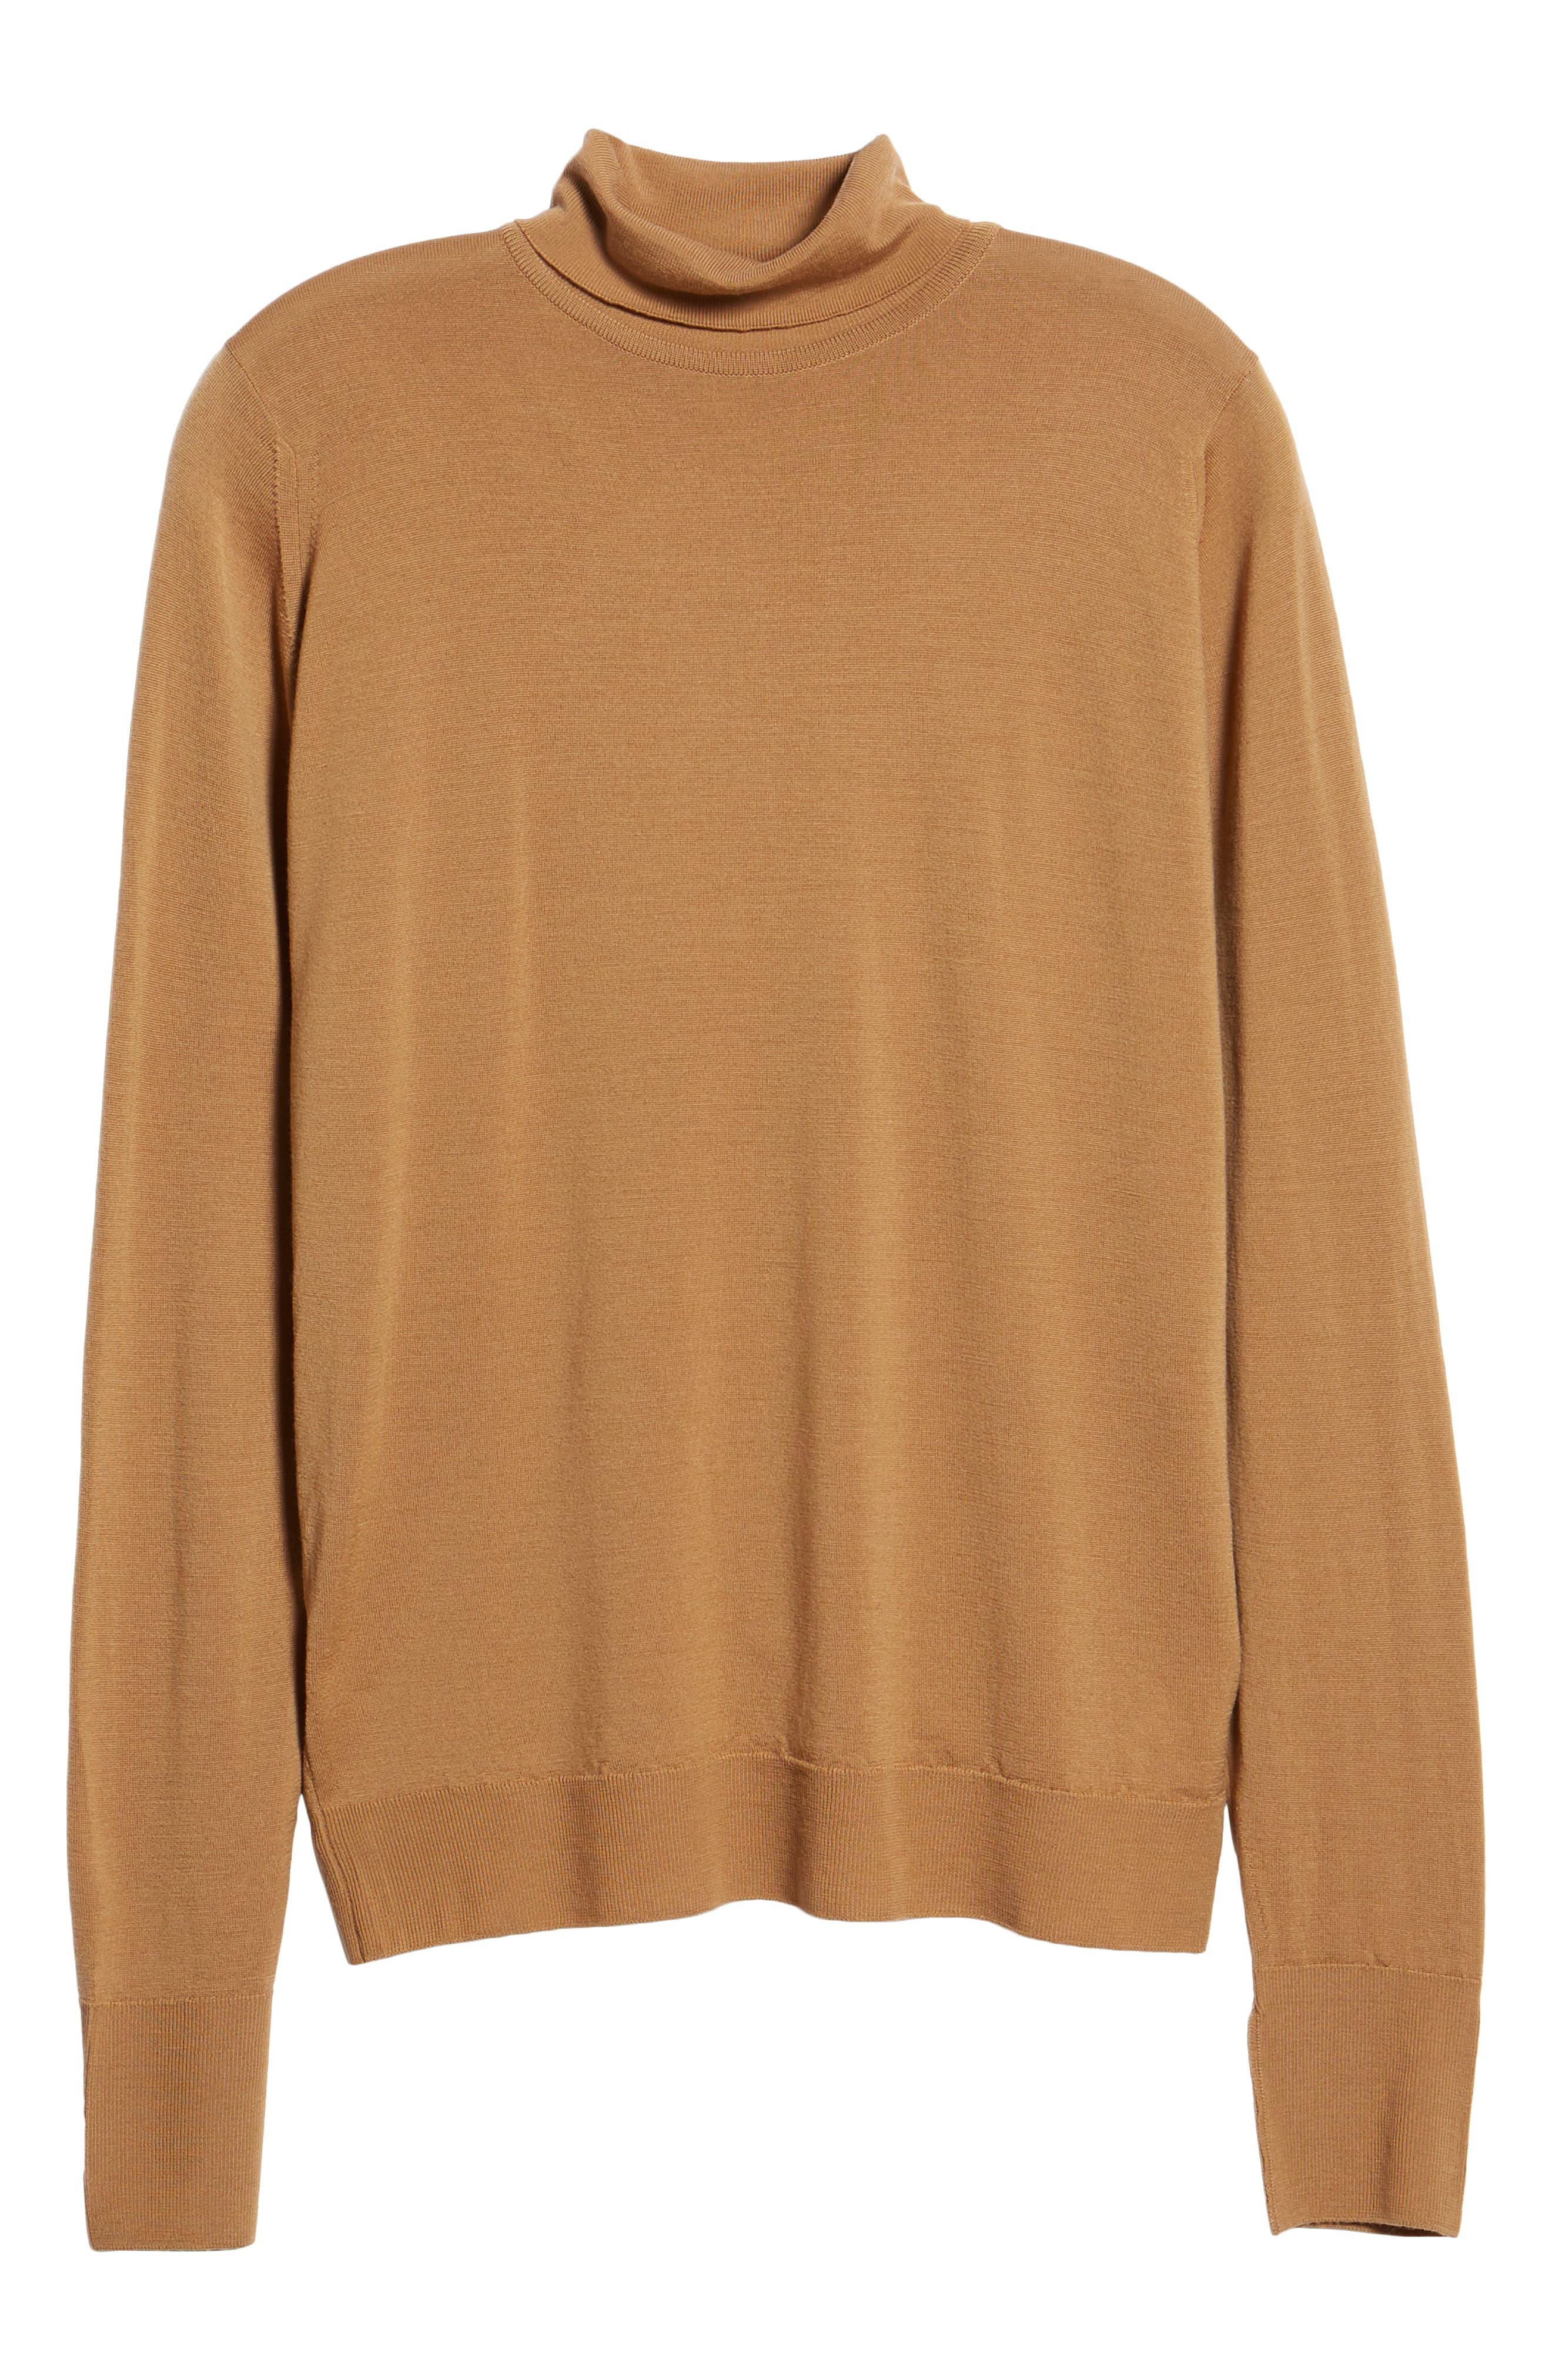 'Richards' Easy Fit Turtleneck Wool Sweater,                             Alternate thumbnail 6, color,                             CAMEL